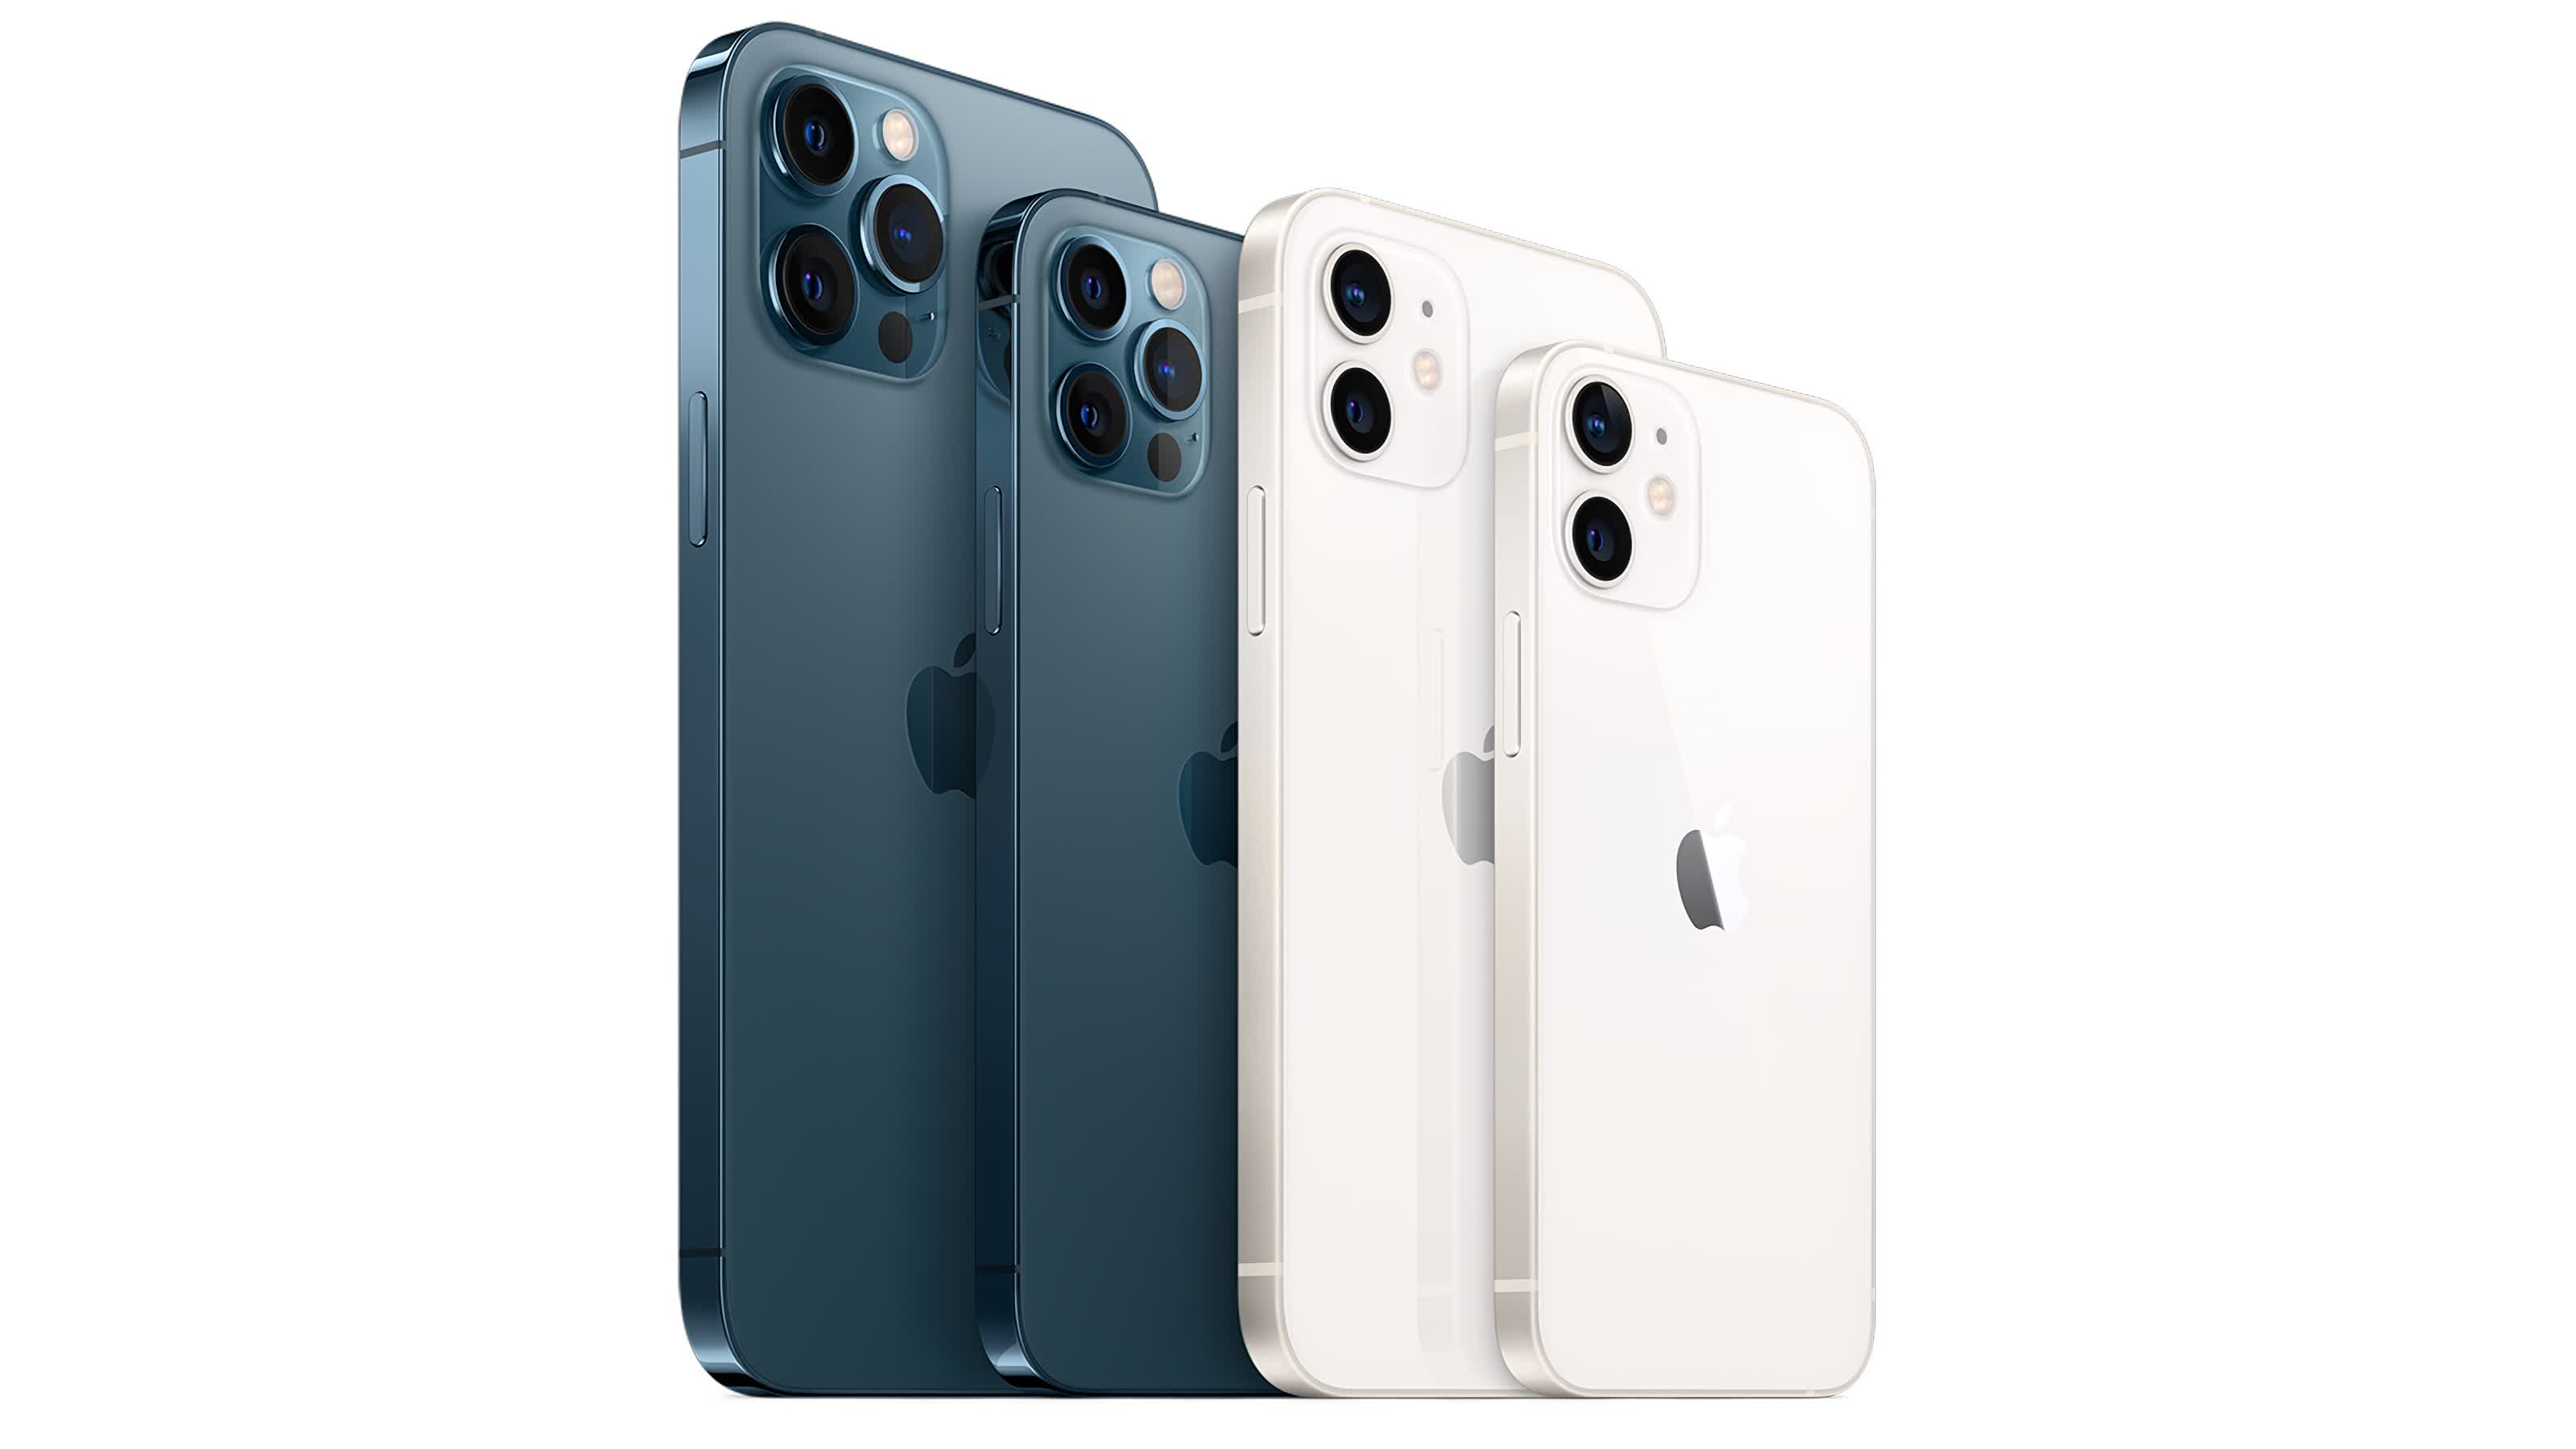 iPhone 12 is retaining its resale value better than the iPhone 11 did